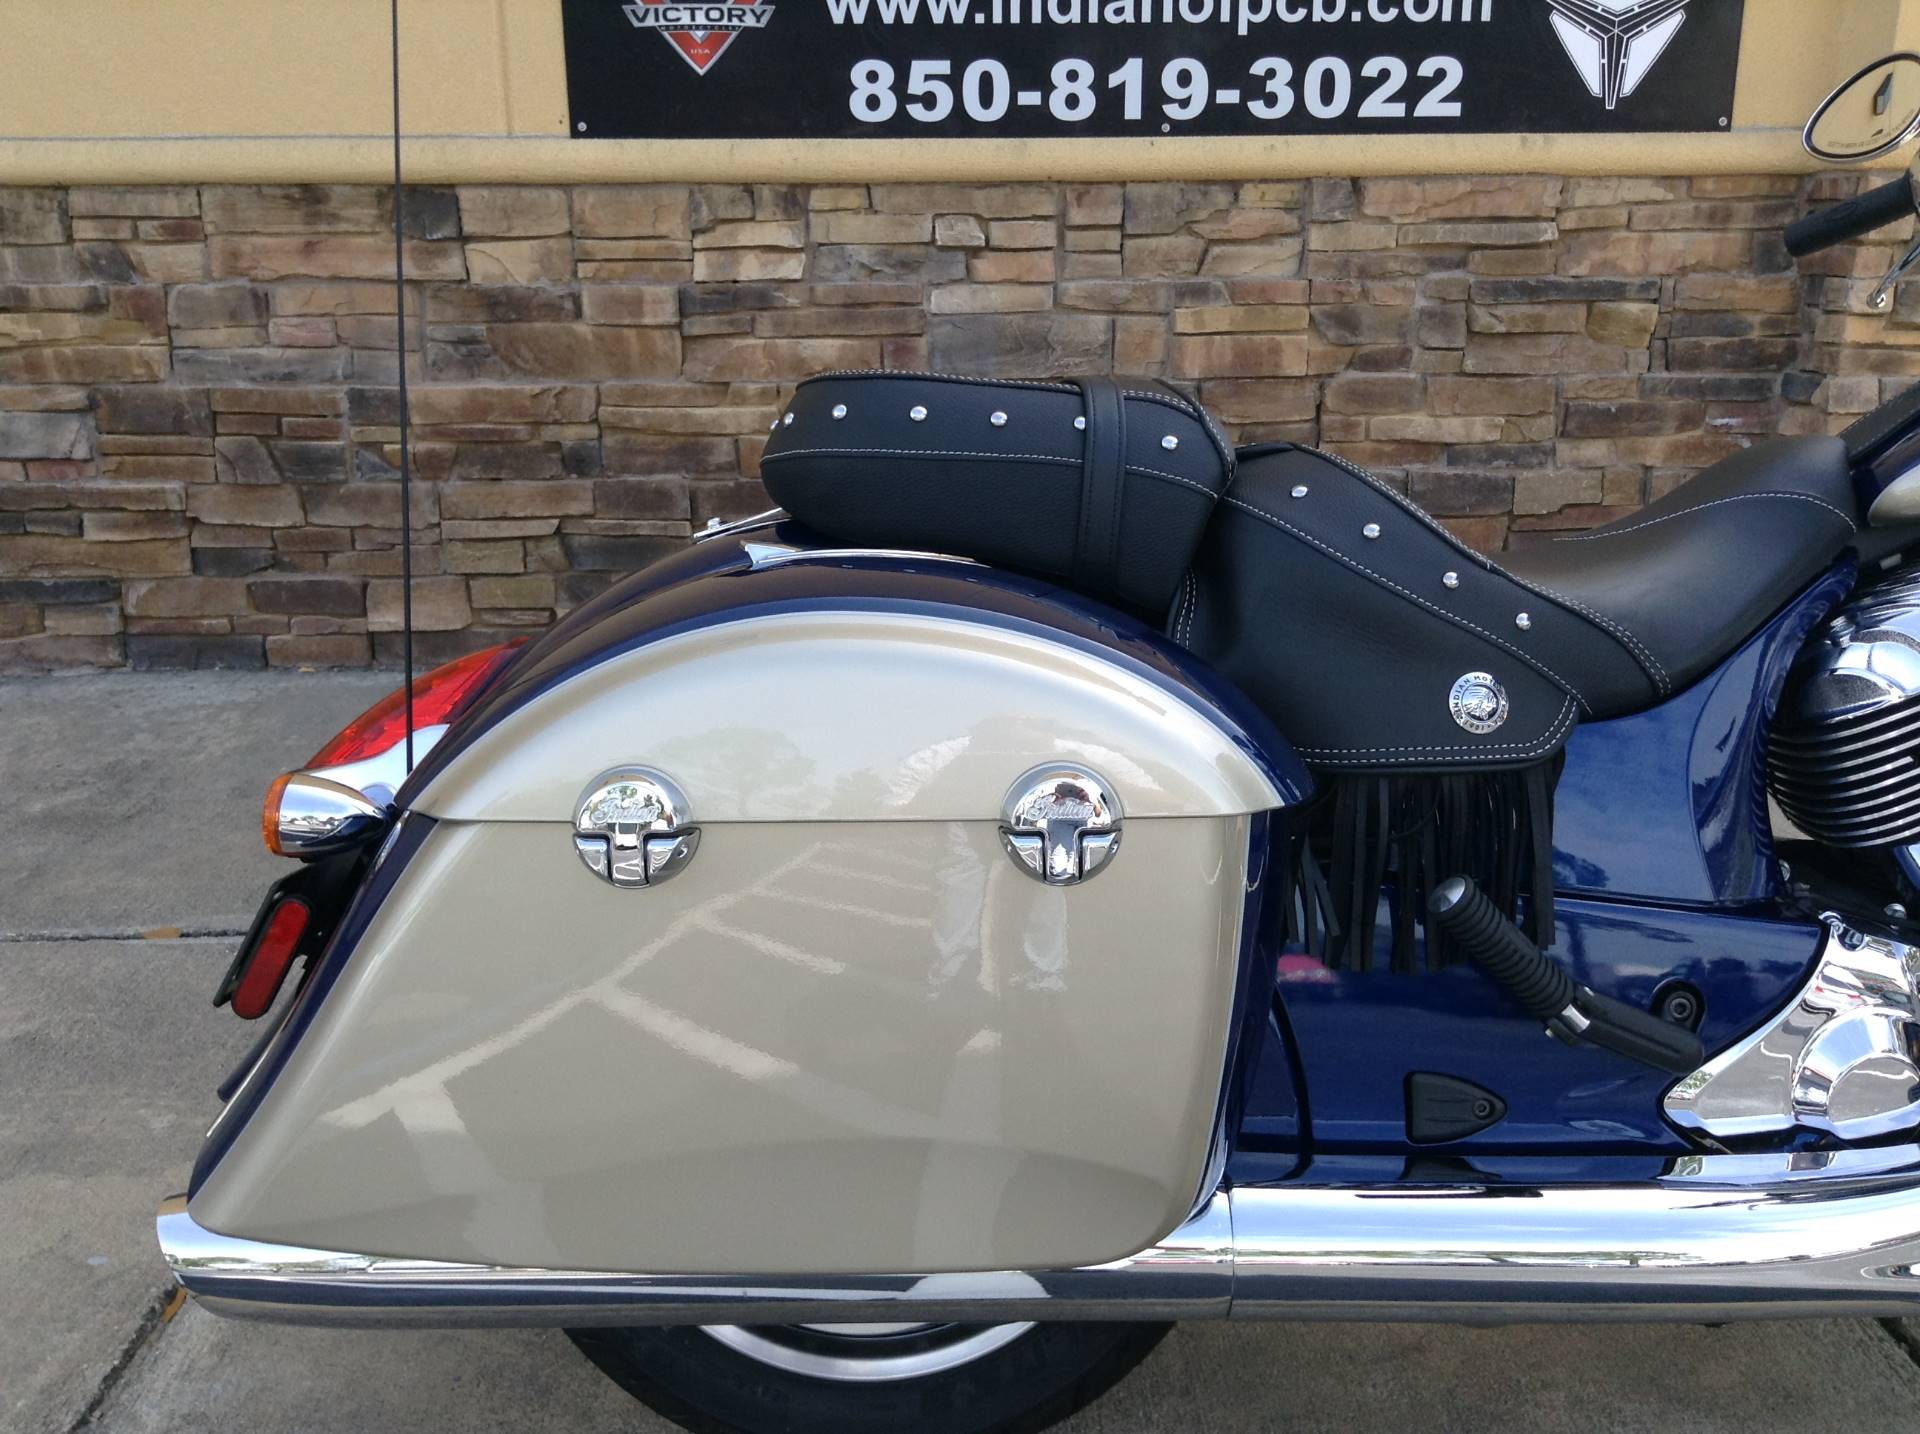 2019 Indian Chieftain Classic in Panama City Beach, Florida - Photo 12